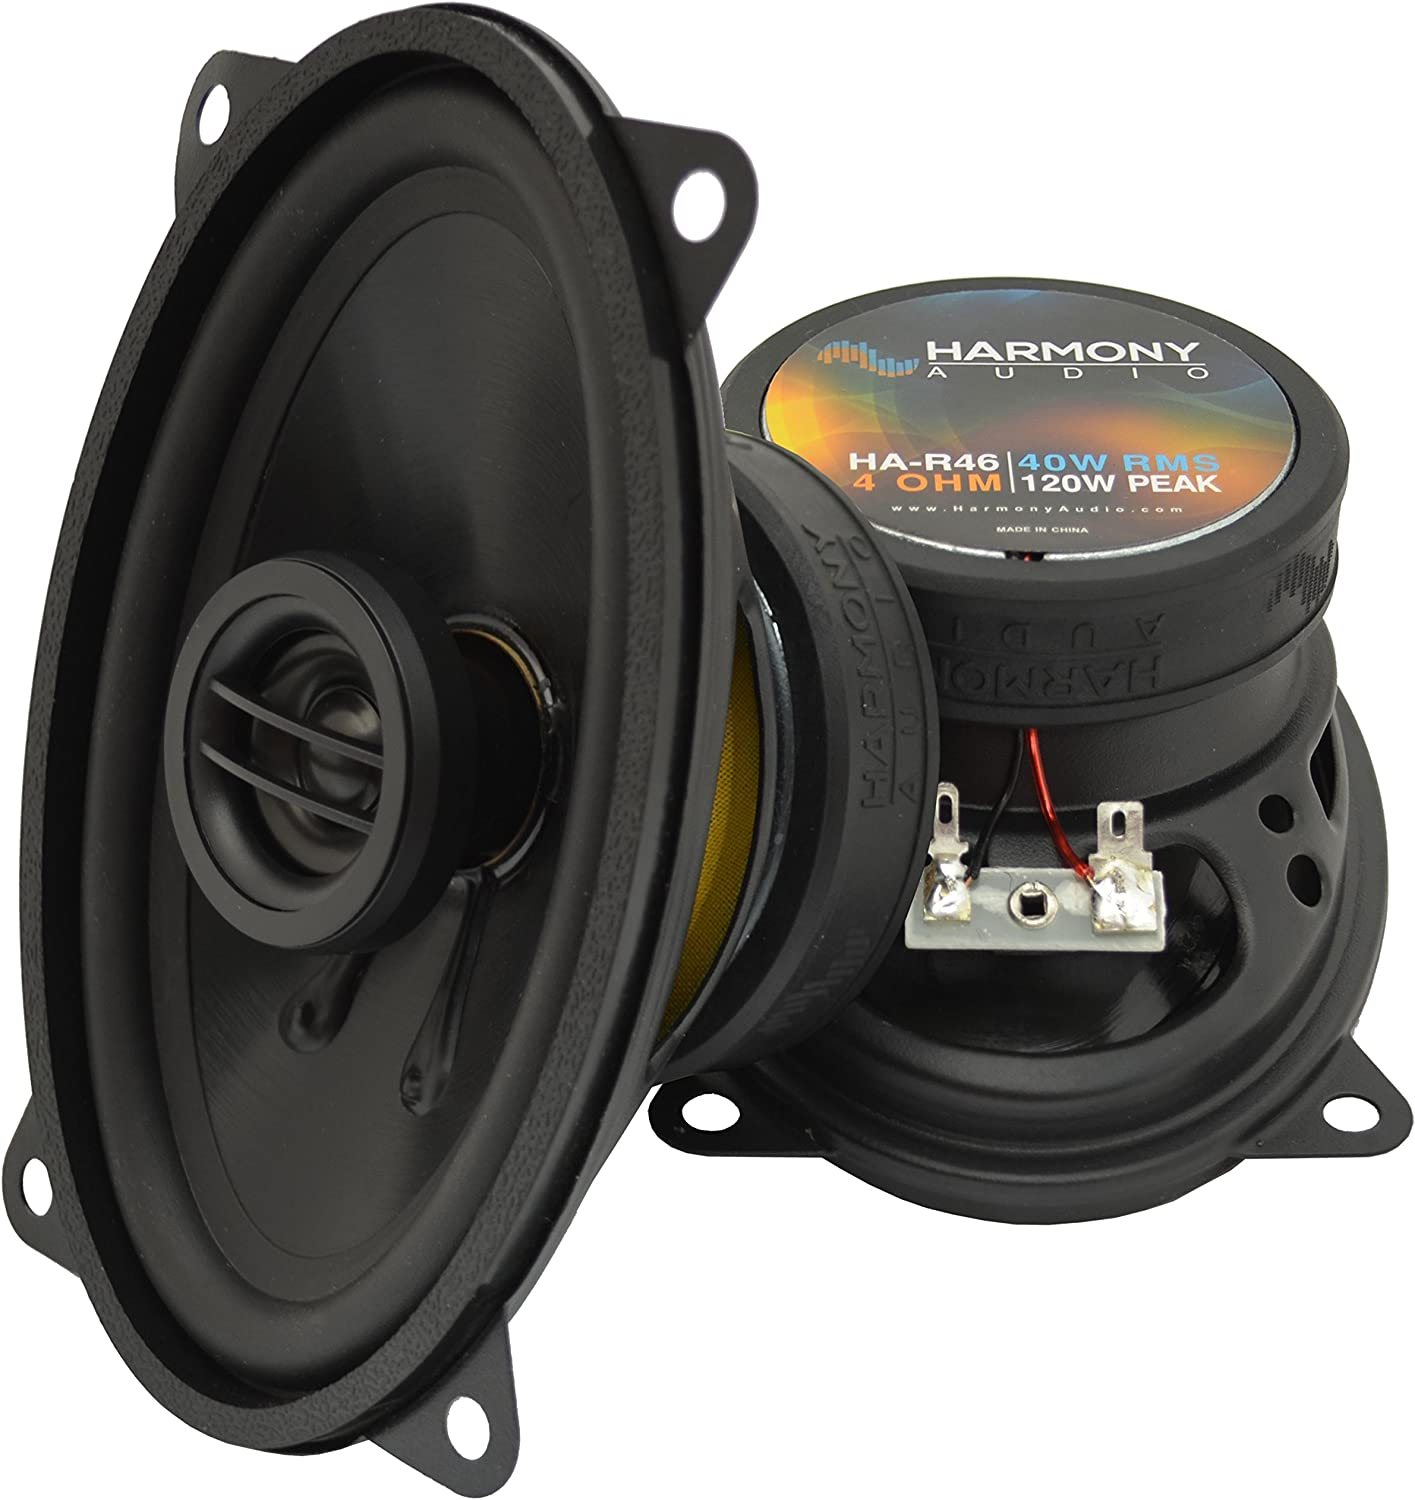 Compatible with Pontiac Grand Am 1996-2005 Front Door Factory Replacement Harmony HA-R46 Speakers